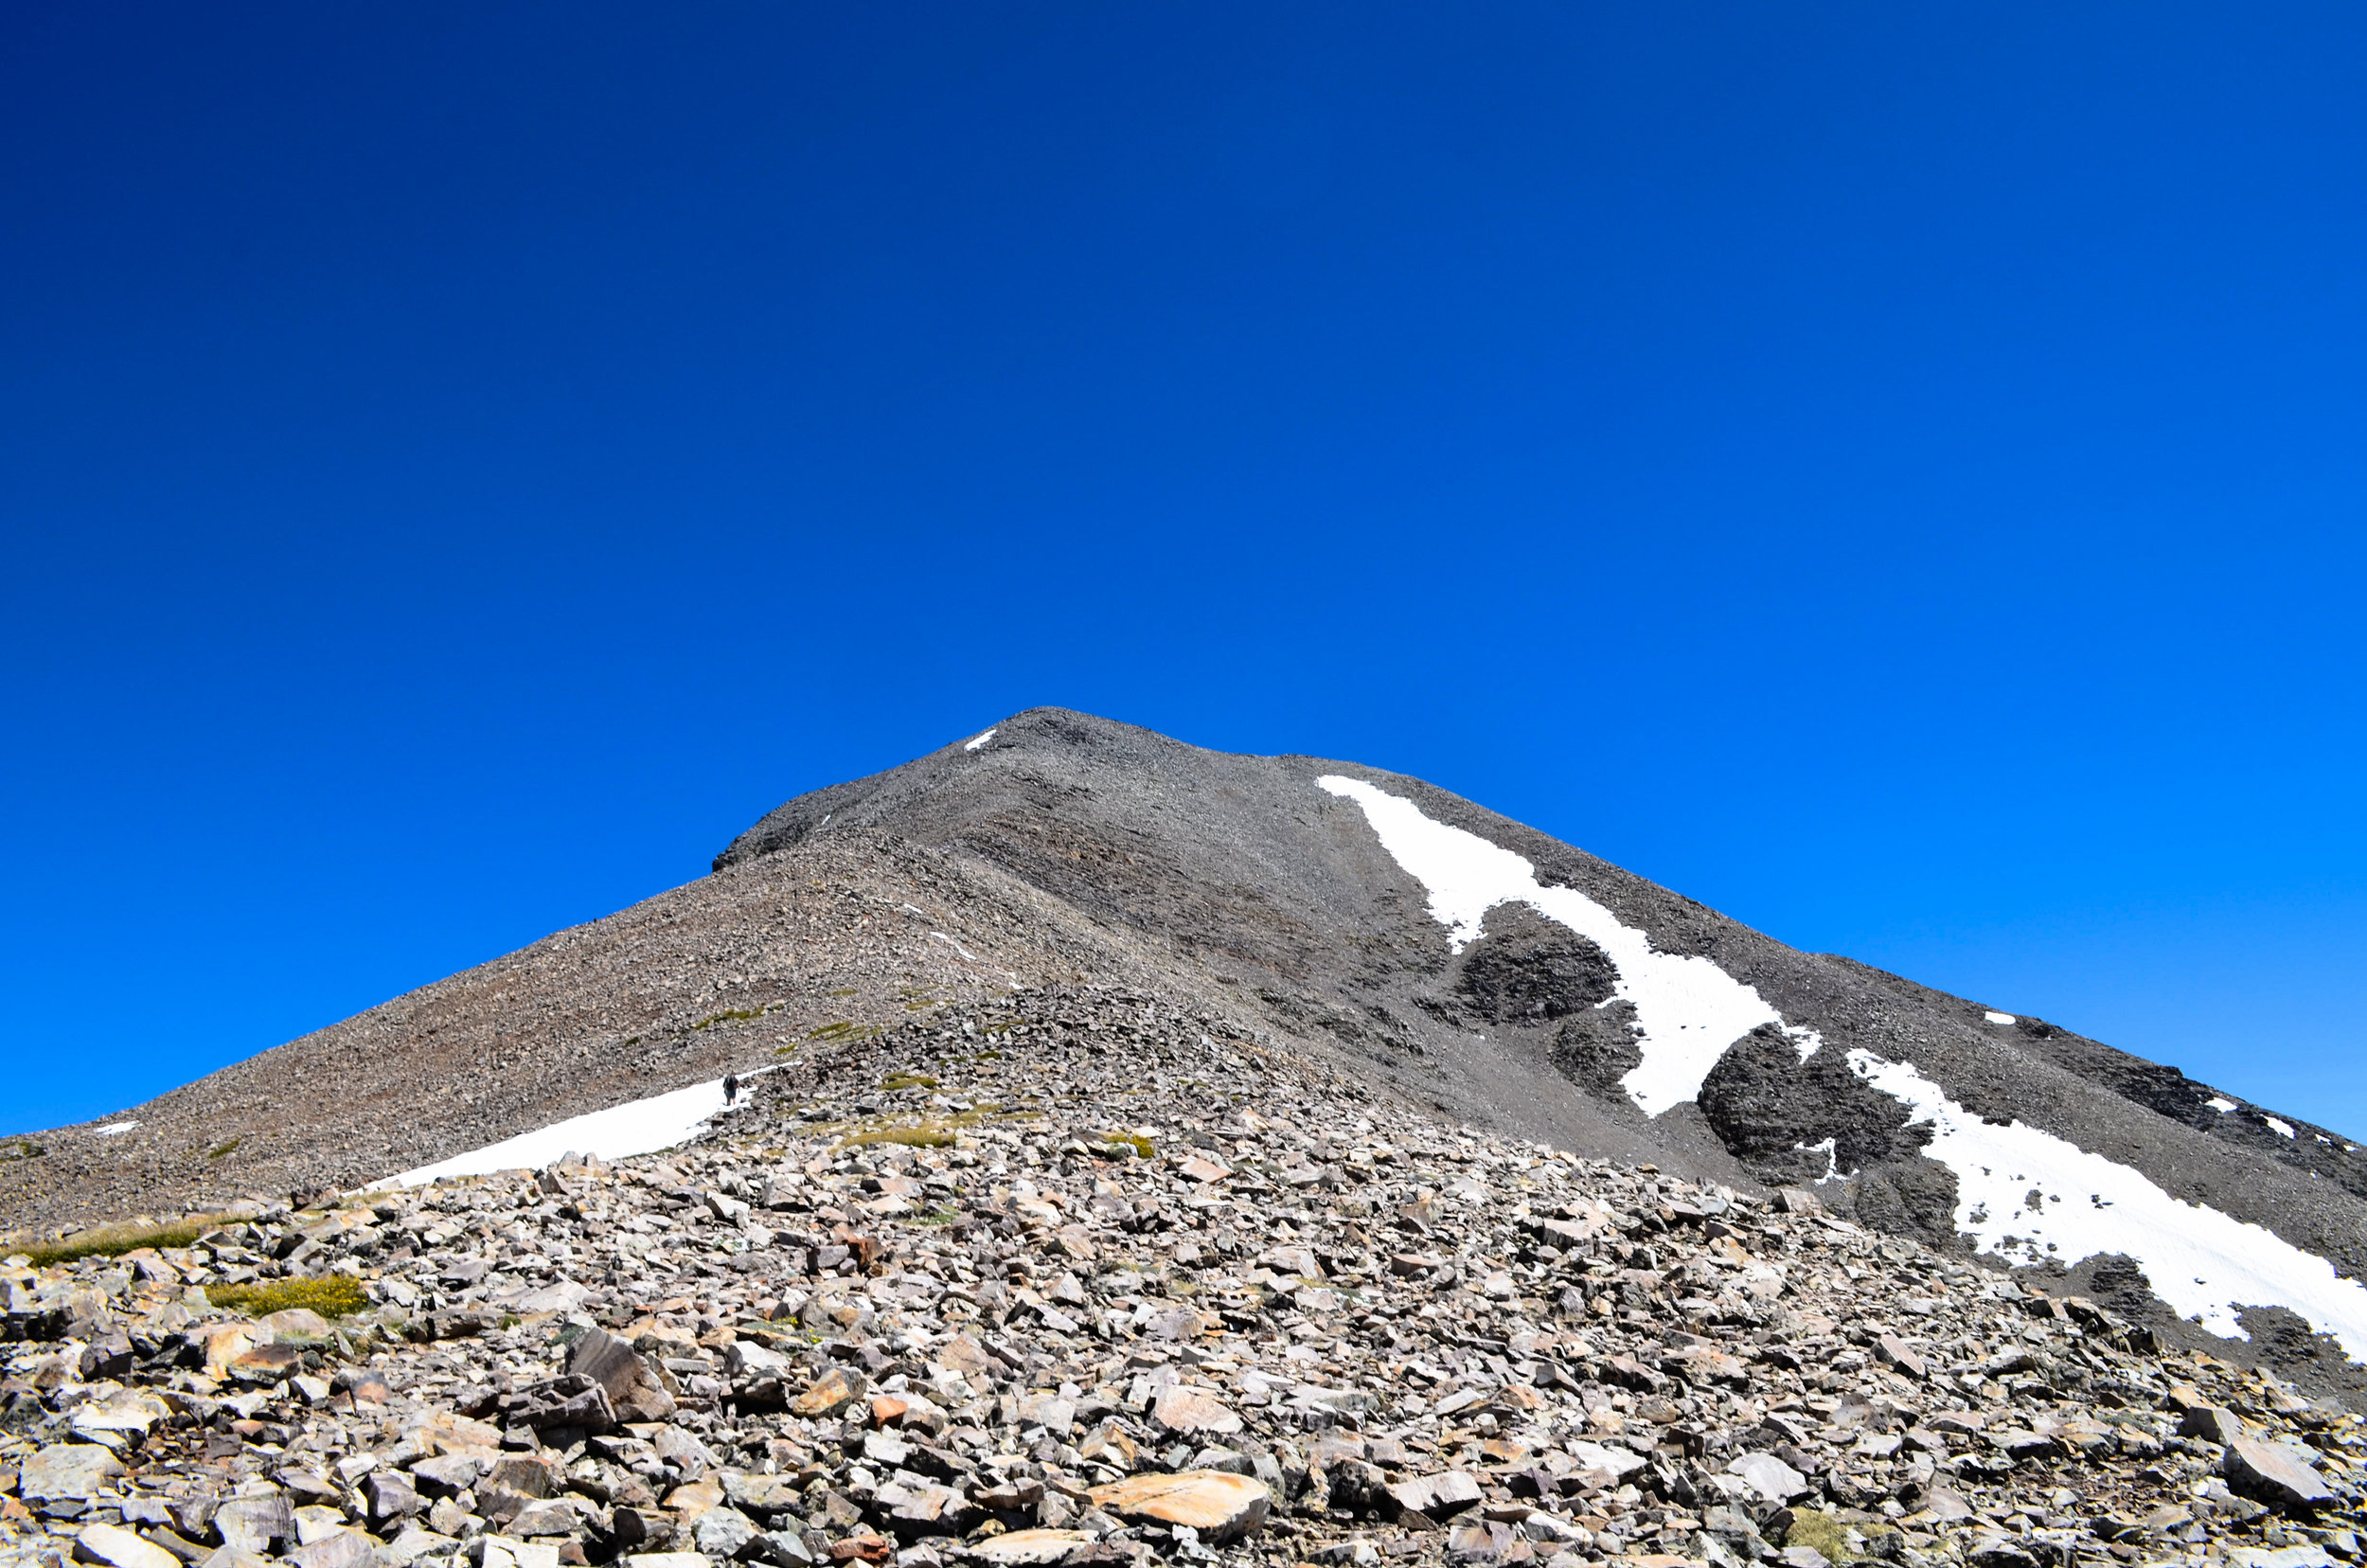 The final hike to the peak — farther than it looks